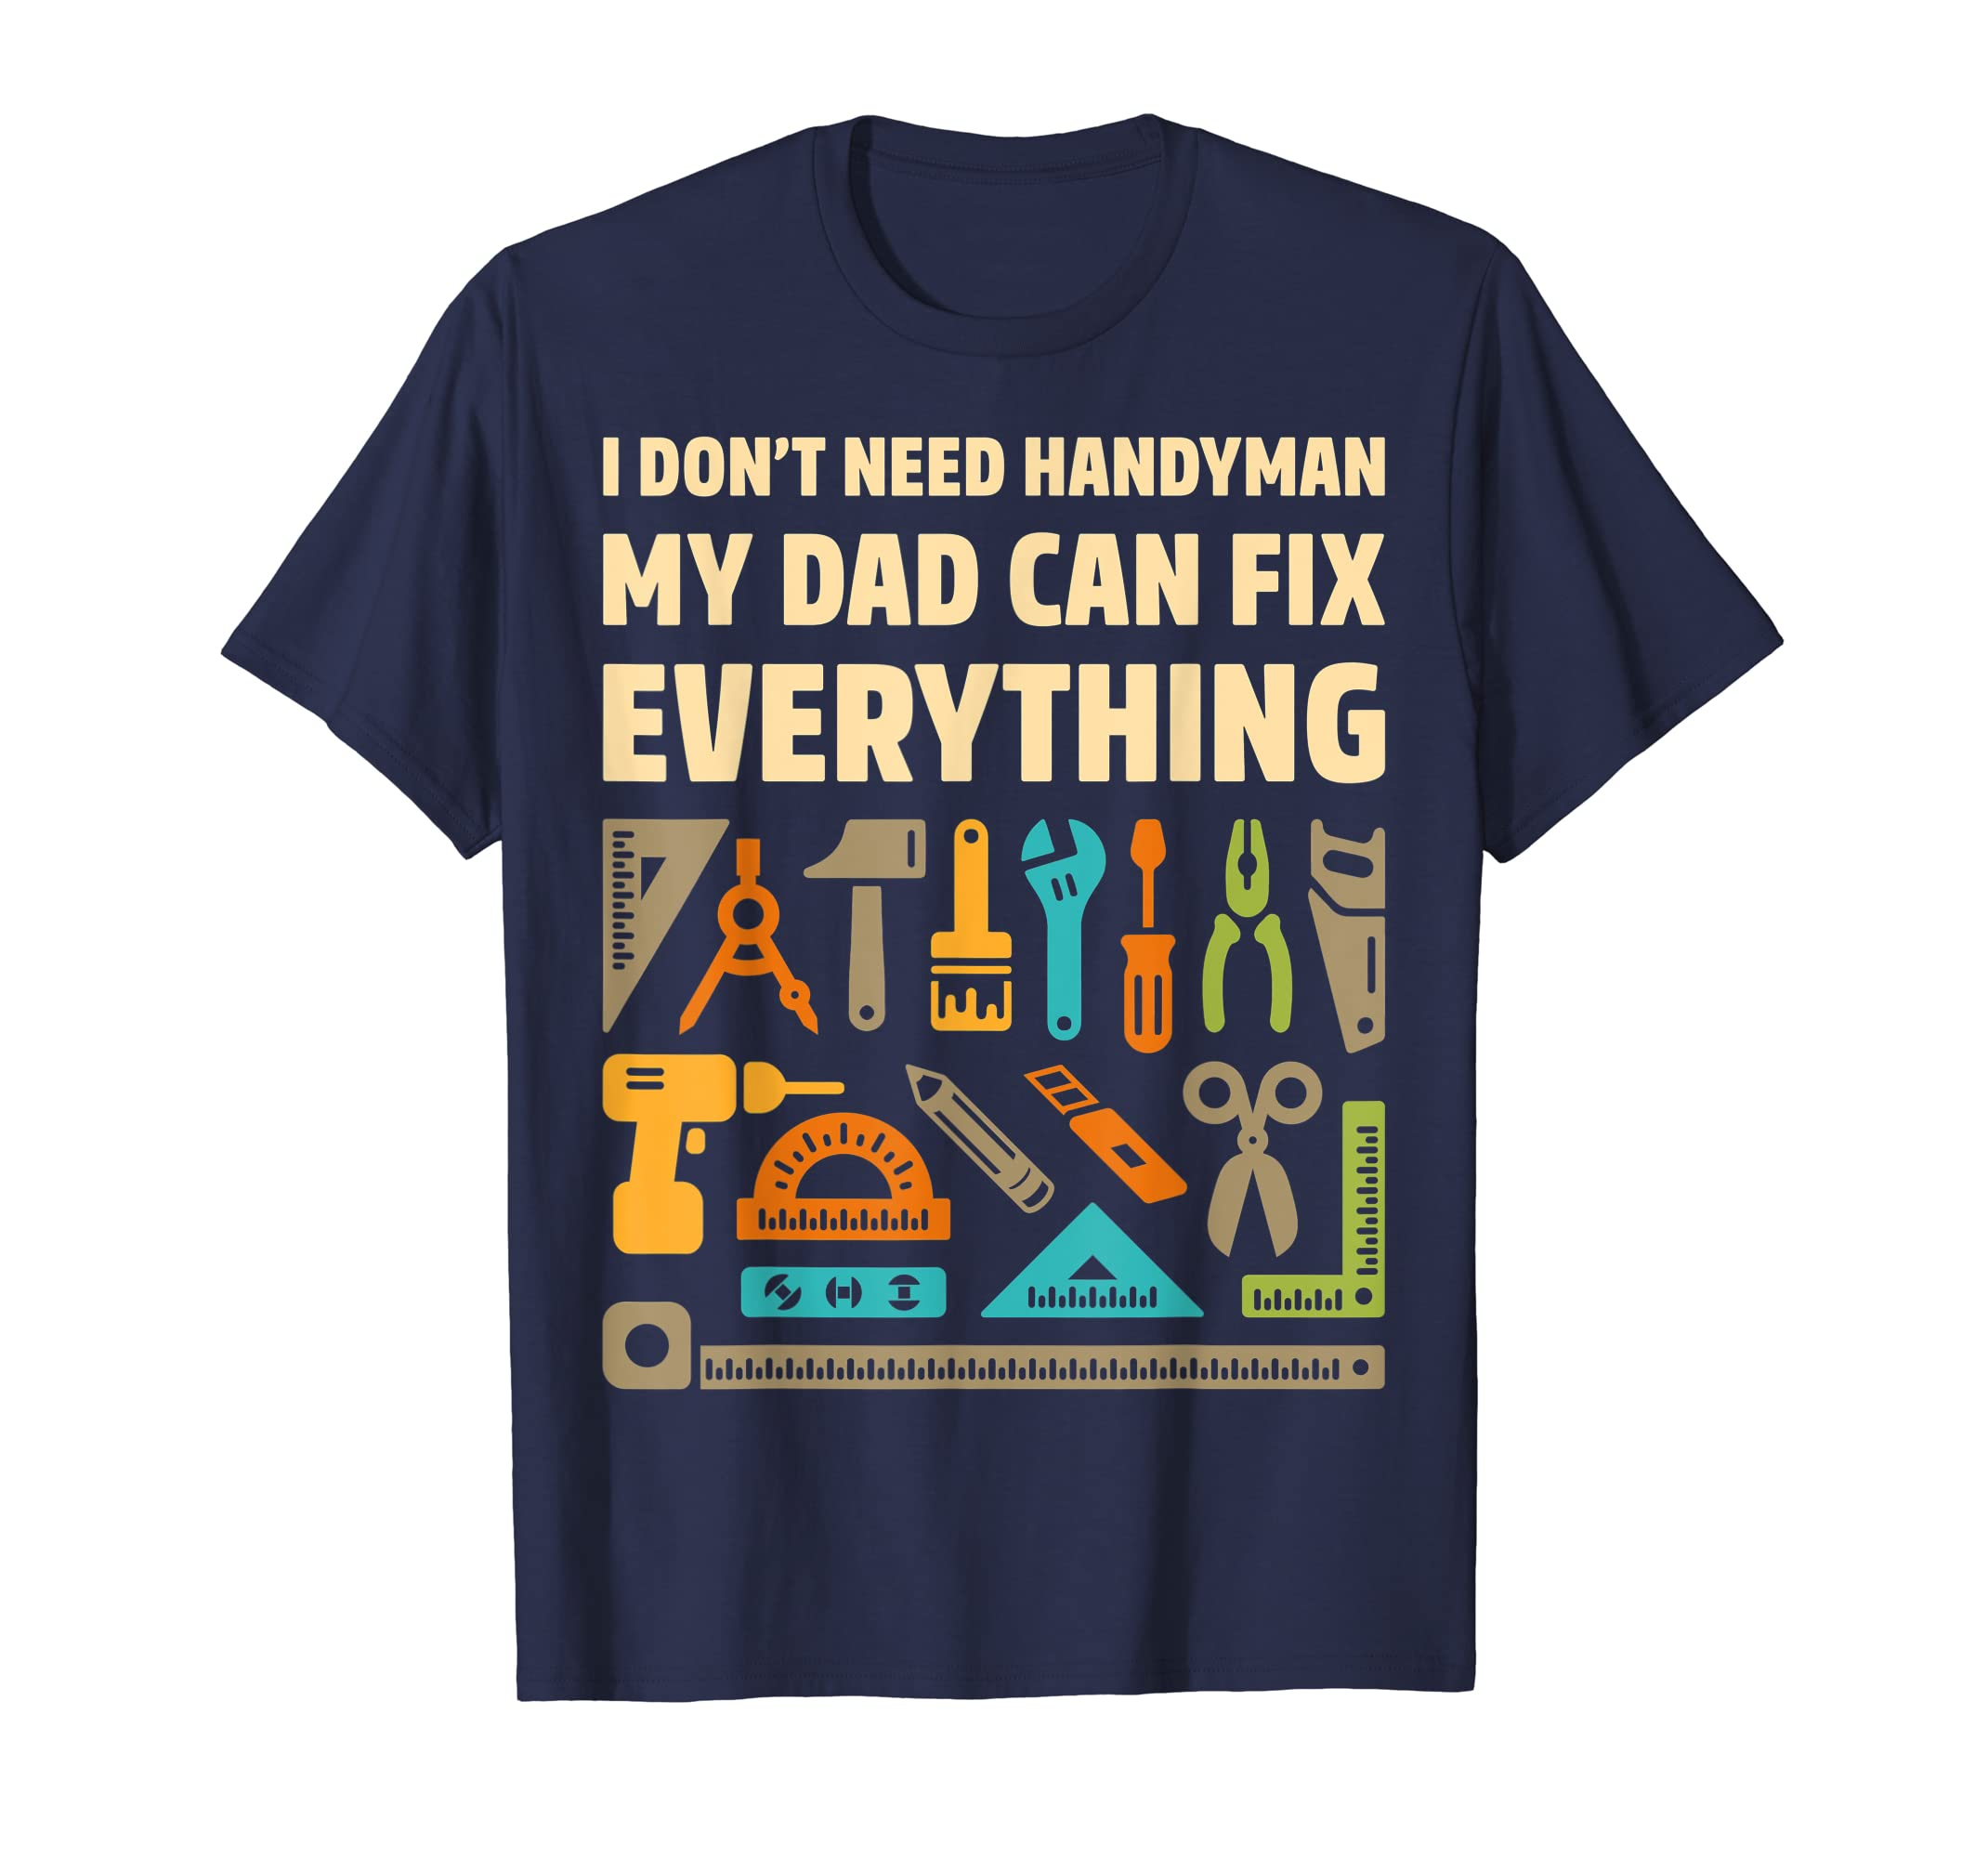 My Dad Can Fix Everything Funny Gift Handyman Tee Shirt-ANZ